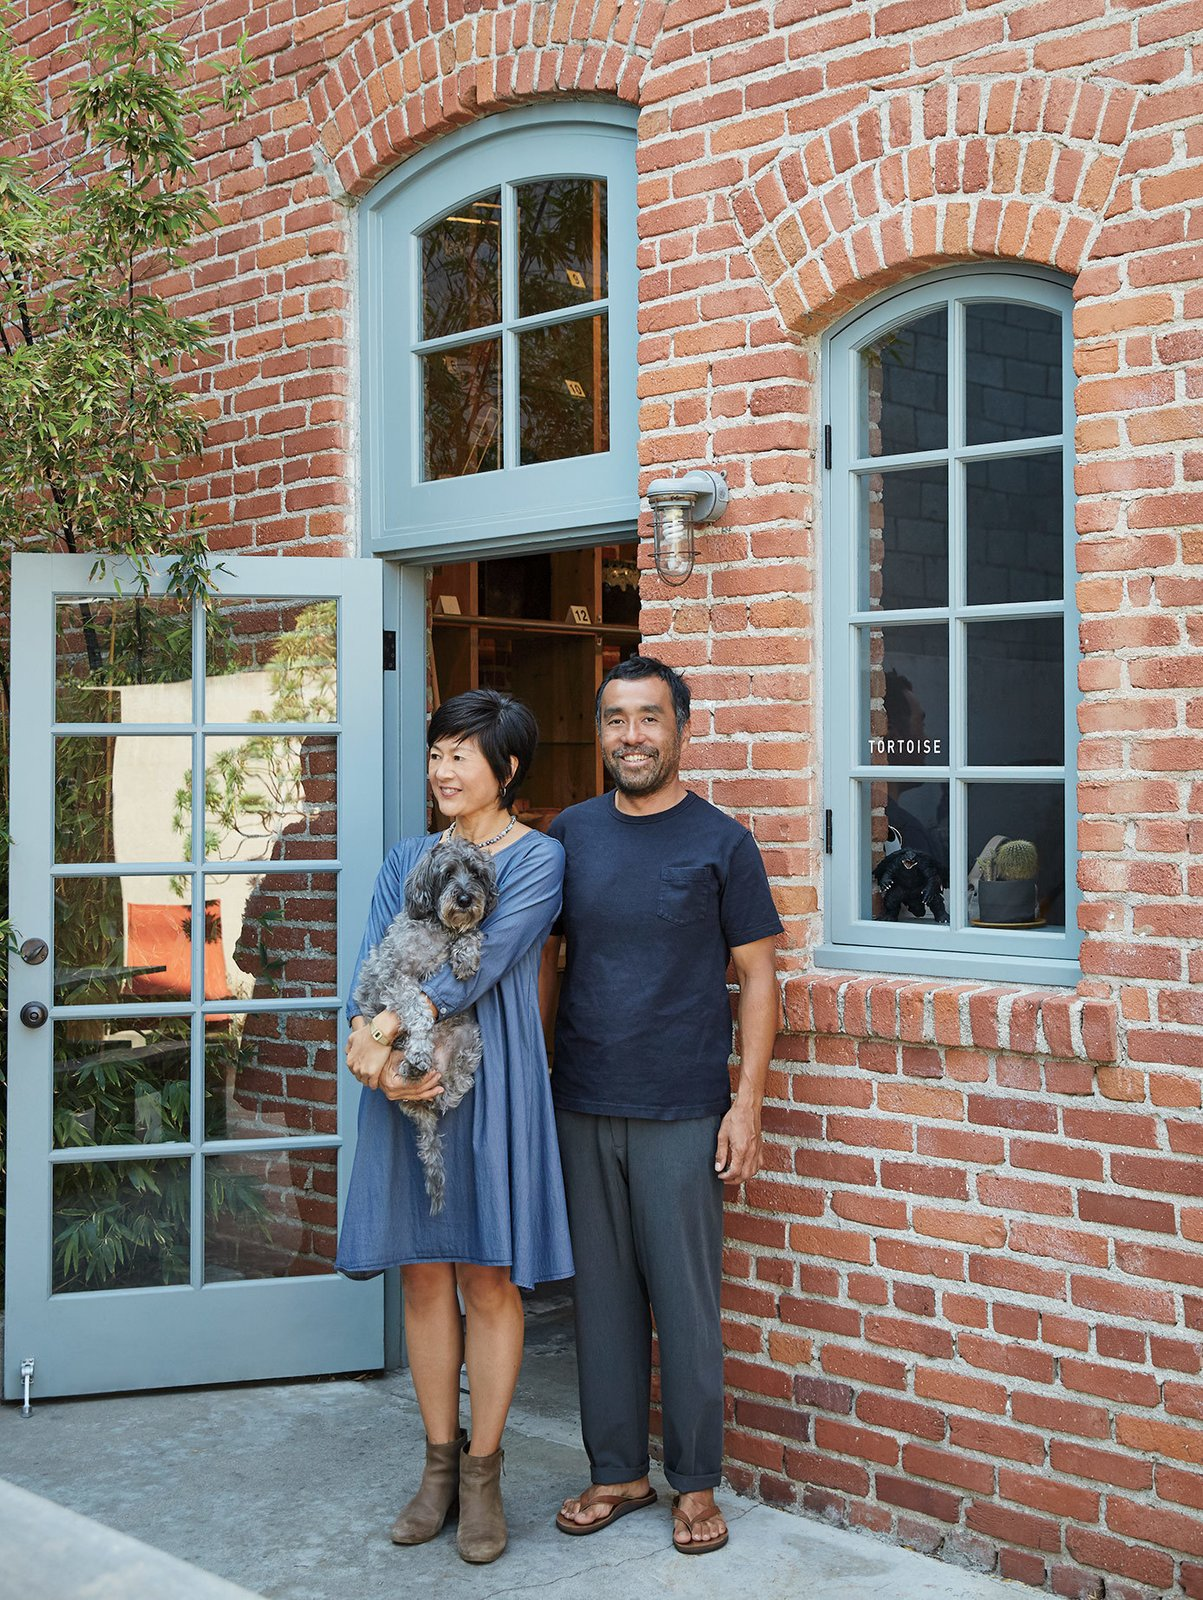 Keiko and Taku Shinomoto (with Fido—pronounced FEE-do) stand outside Tortoise, which is set off by a small outdoor courtyard. A Cute Mom-and-Pop Shop in L.A. Showcases the Latest Japanese Design - Photo 6 of 6